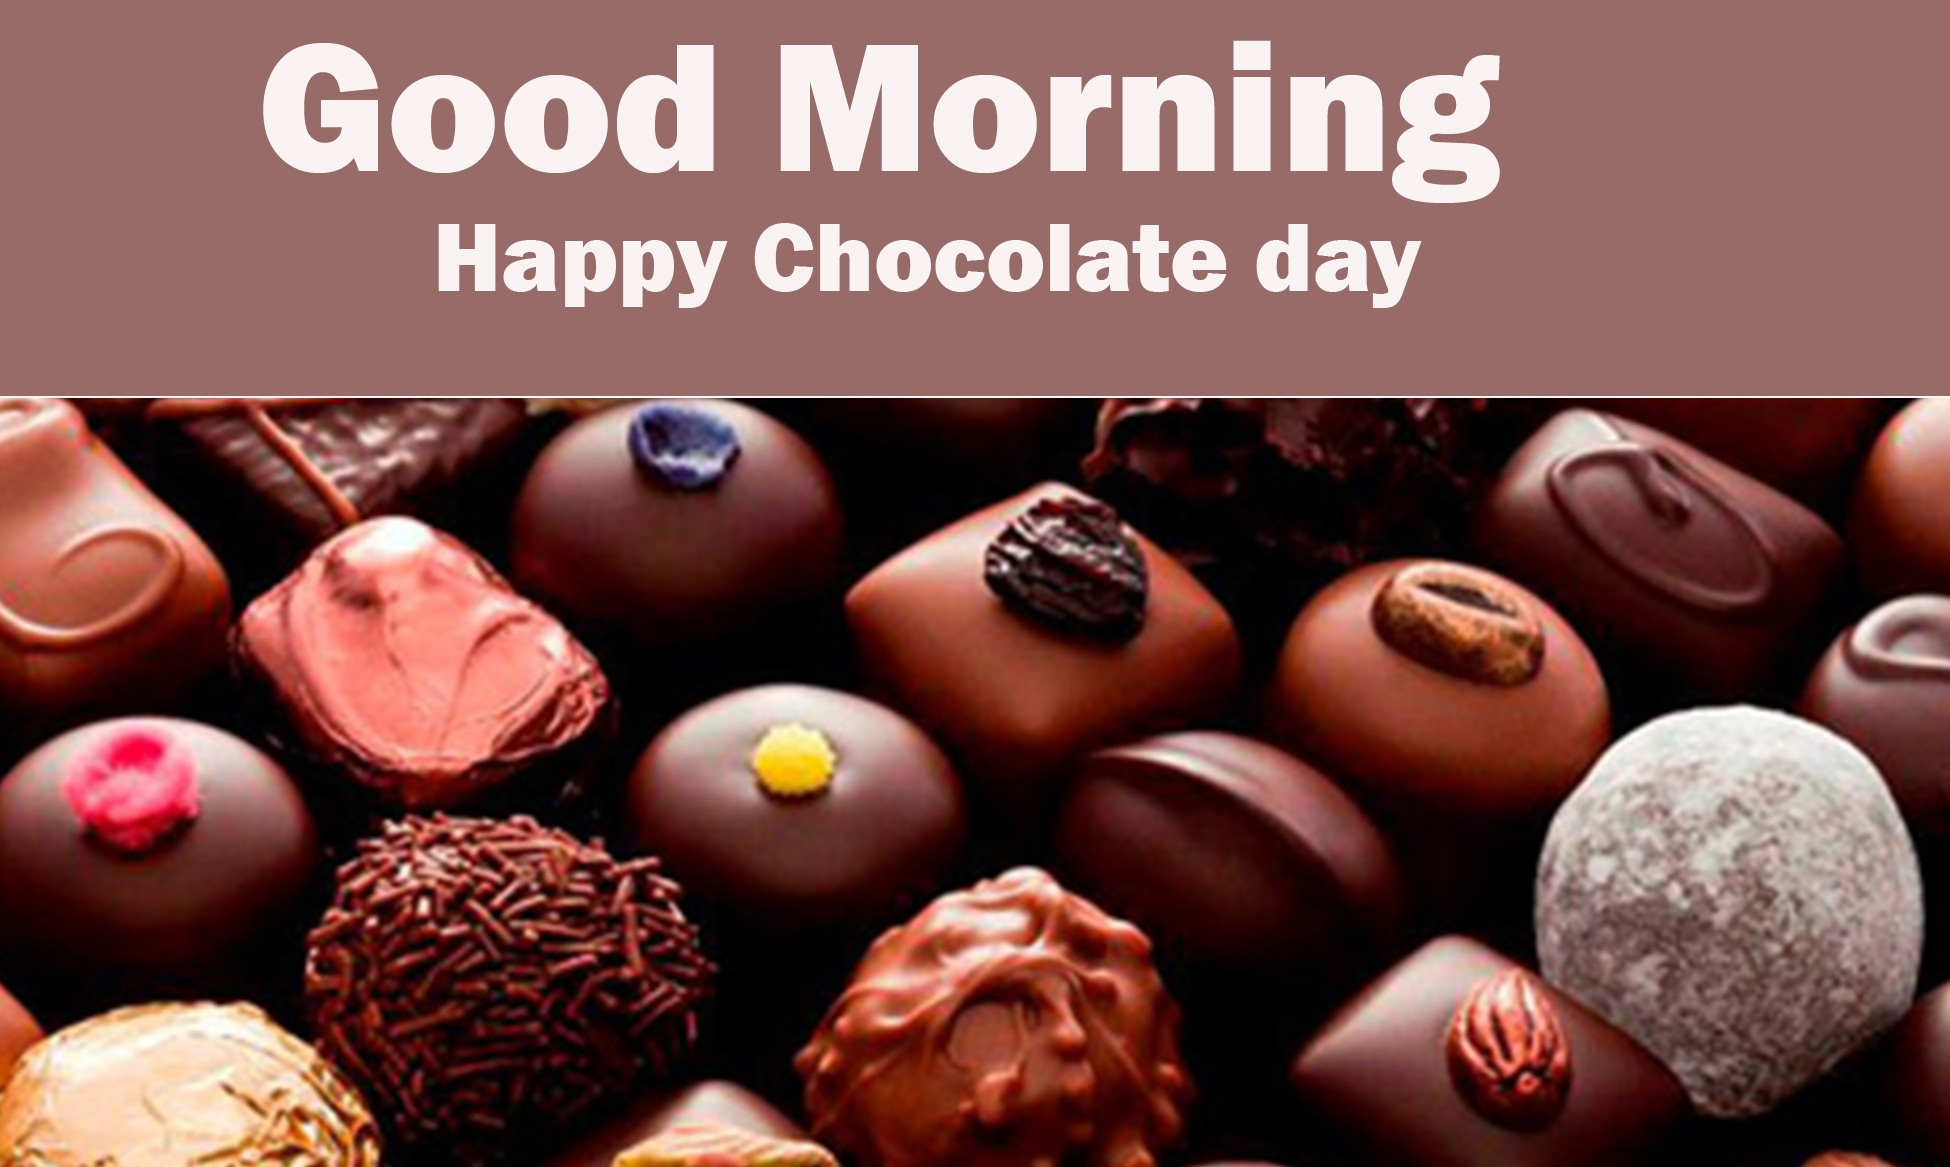 Chocolate Day Good Morning Pics free Dow load